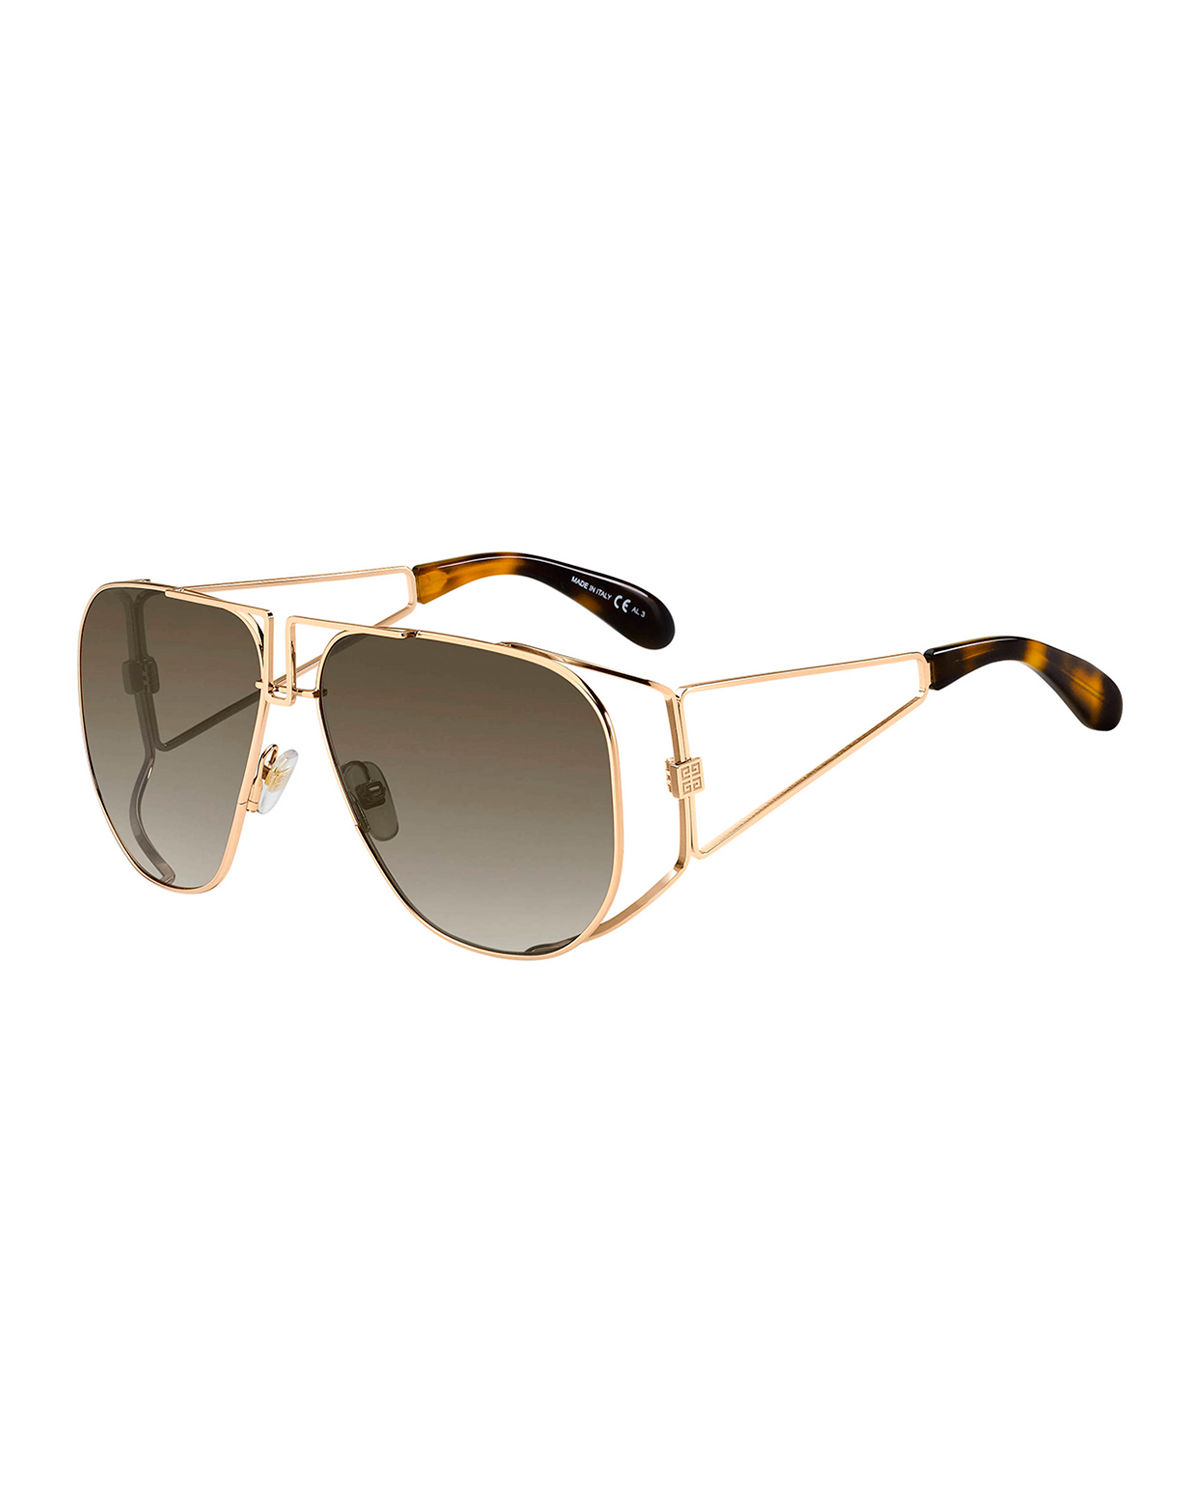 Givenchy Sunglasses MEN'S 4G OPEN GEOMETRIC STAINLESS STEEL SUNGLASSES